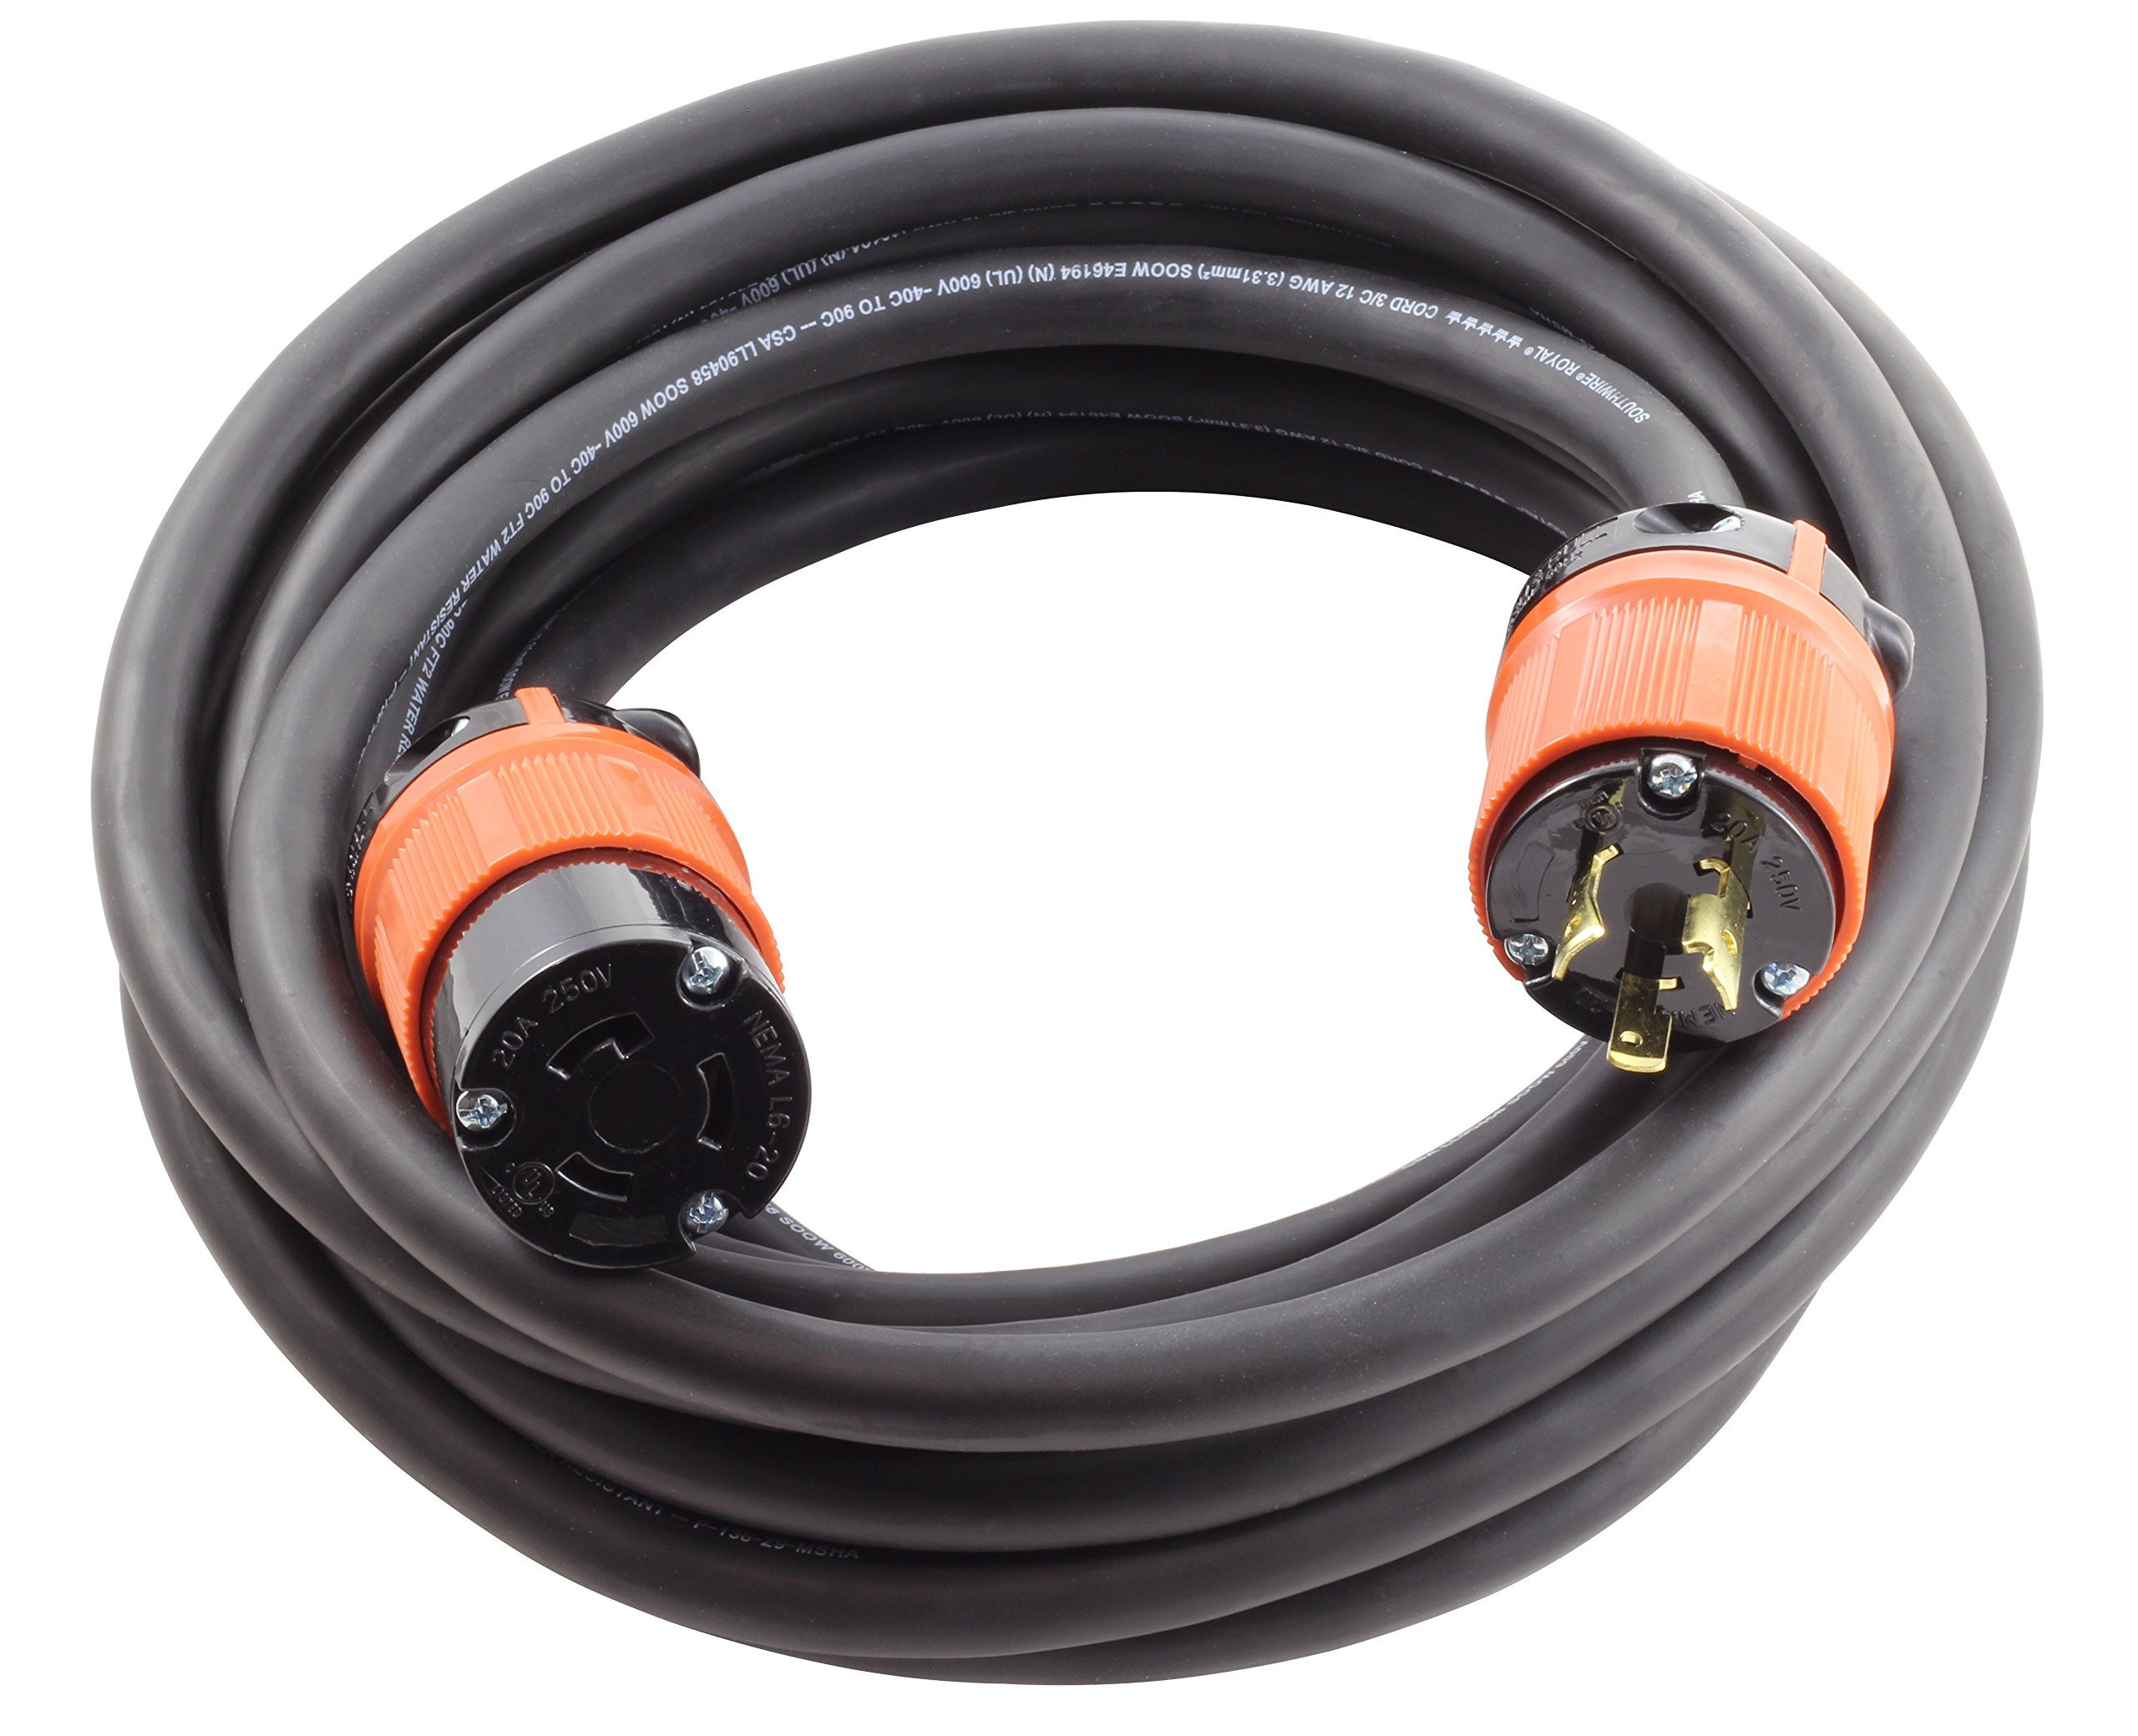 AC WORKS NEMA L6-20 Rubber SOOW 12/3 Locking Extension Cord (10FT)